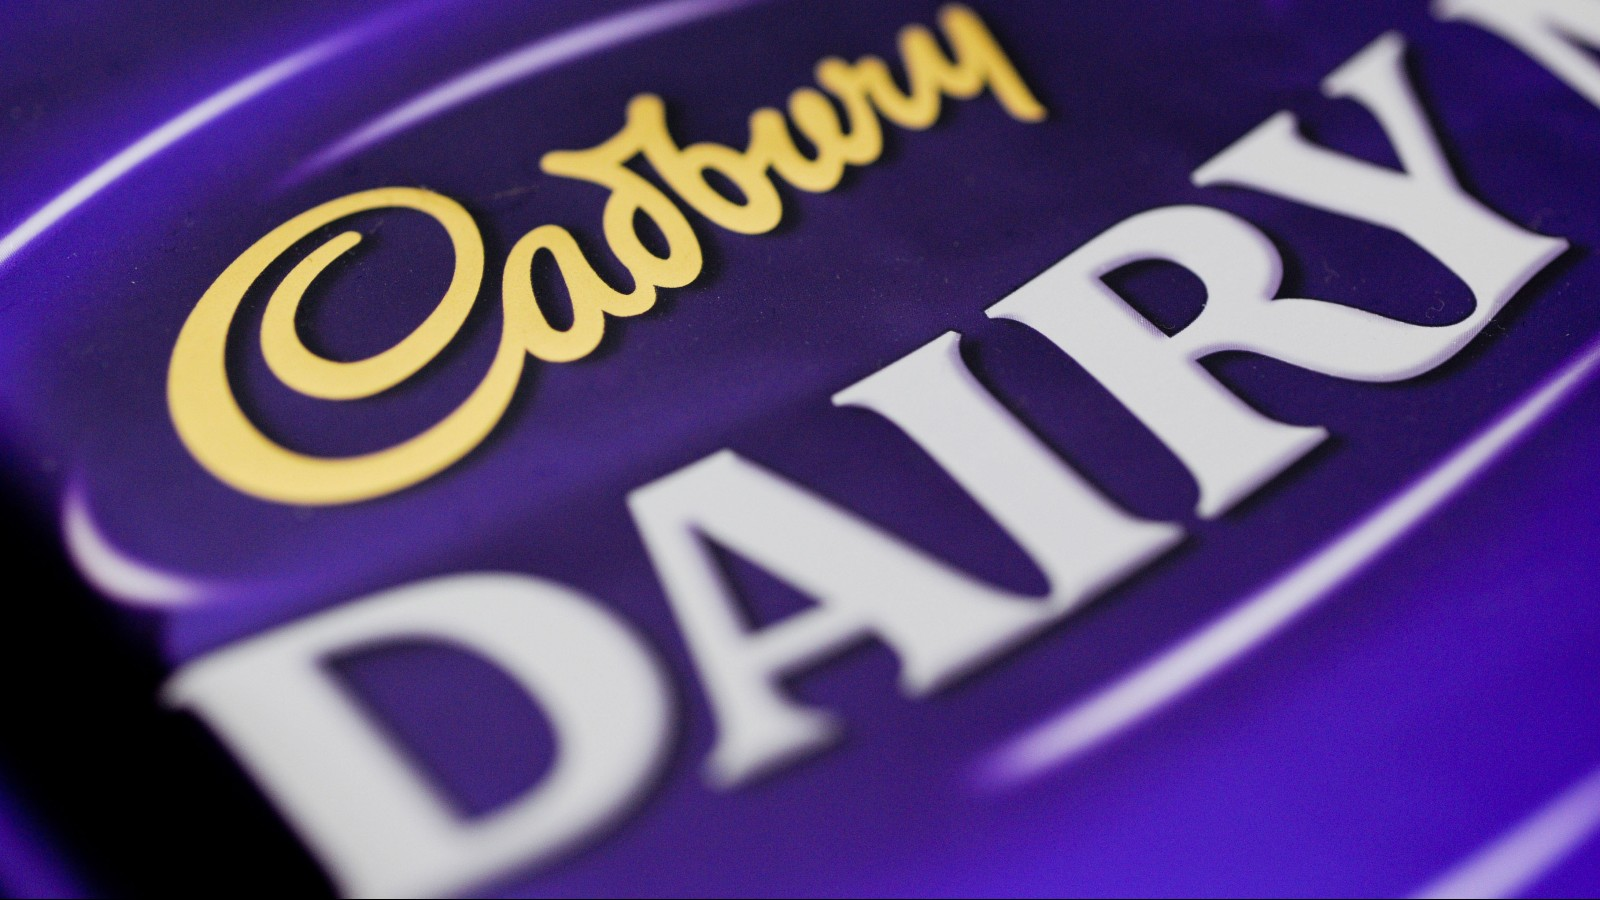 Chocolate fans are going wild for this SUPERSIZE Cadbury's bar selling at half price